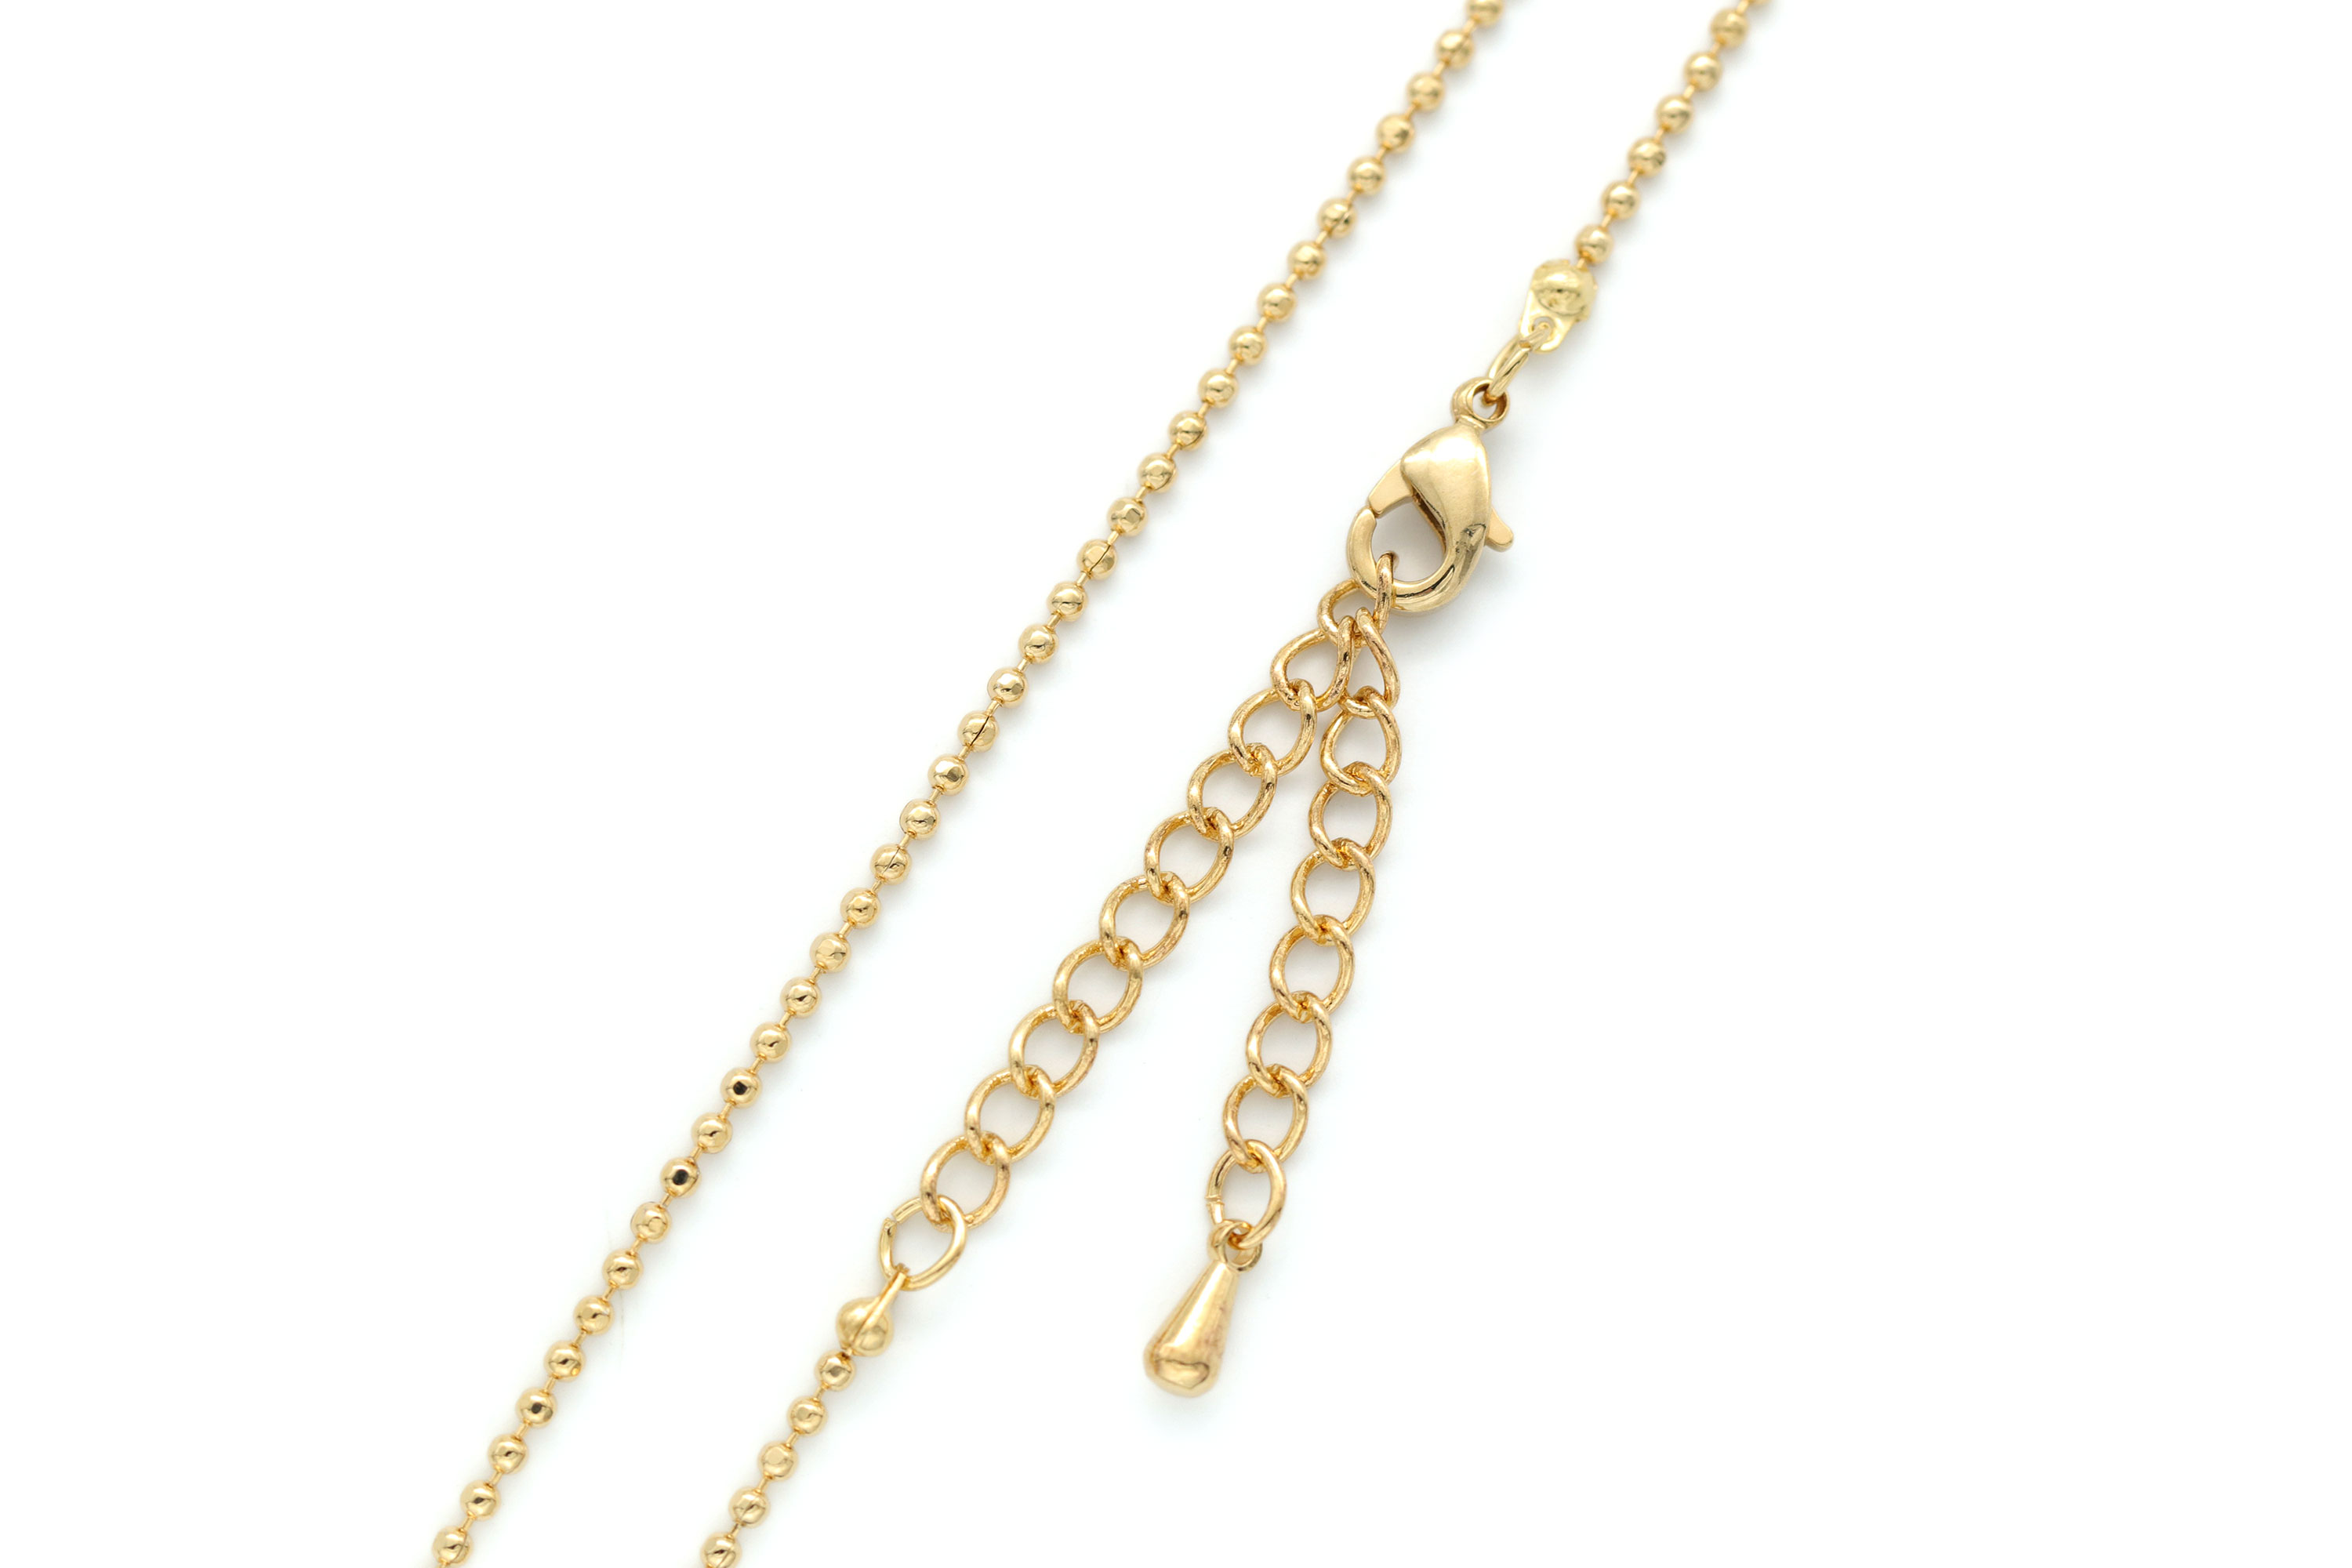 1.5 ball DC chain necklace, N0403-G1